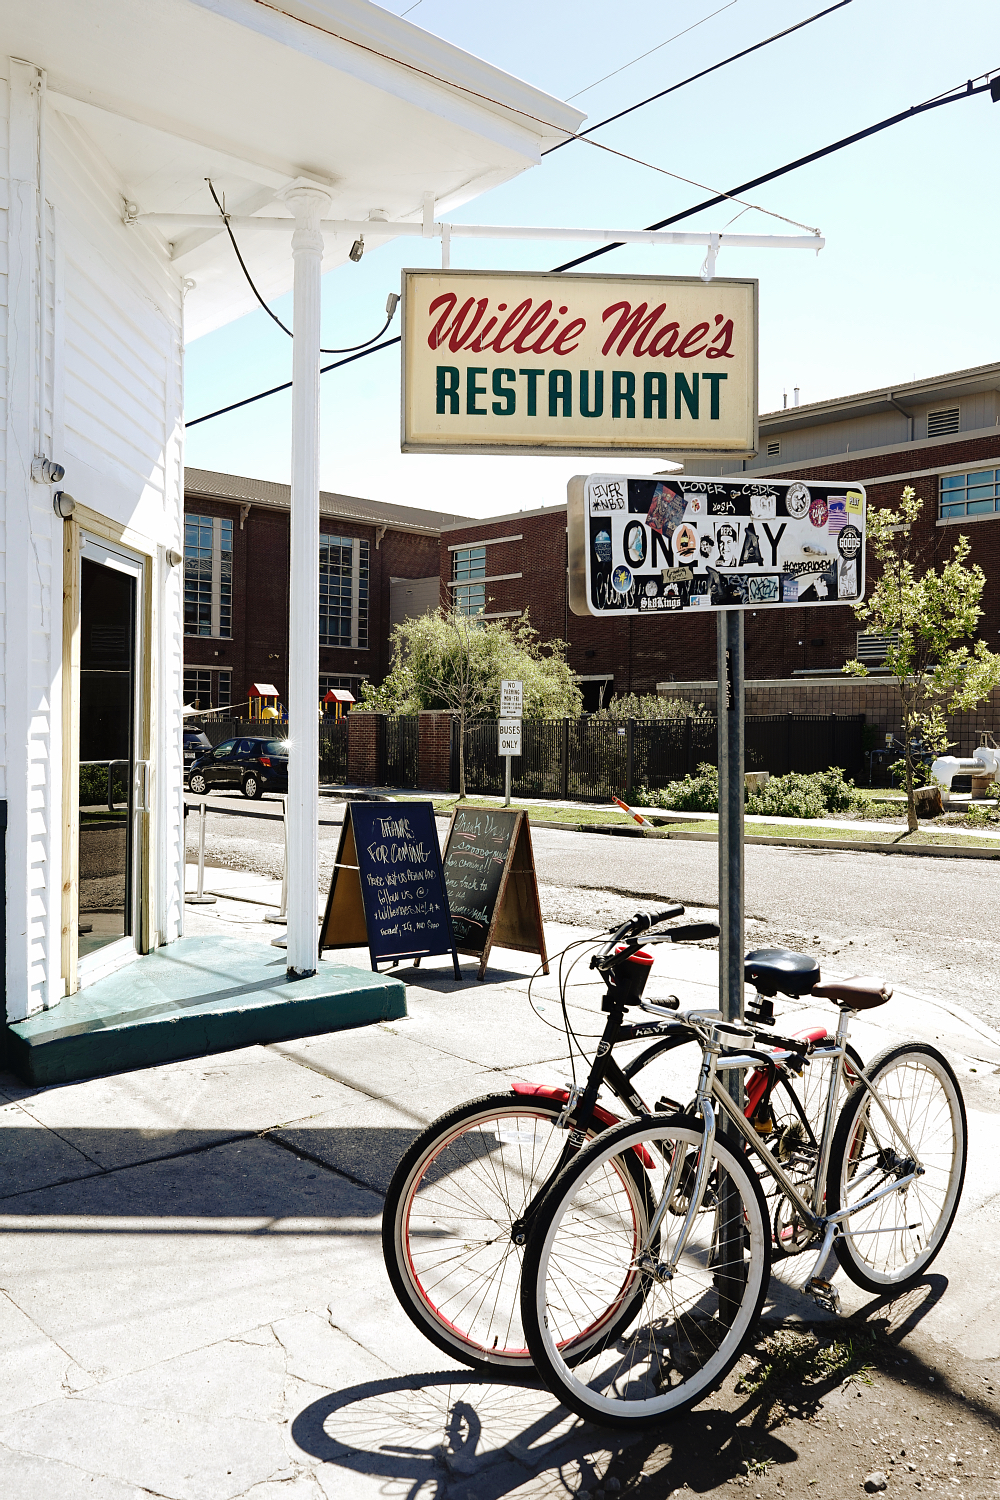 Willie Mae's Restaurant